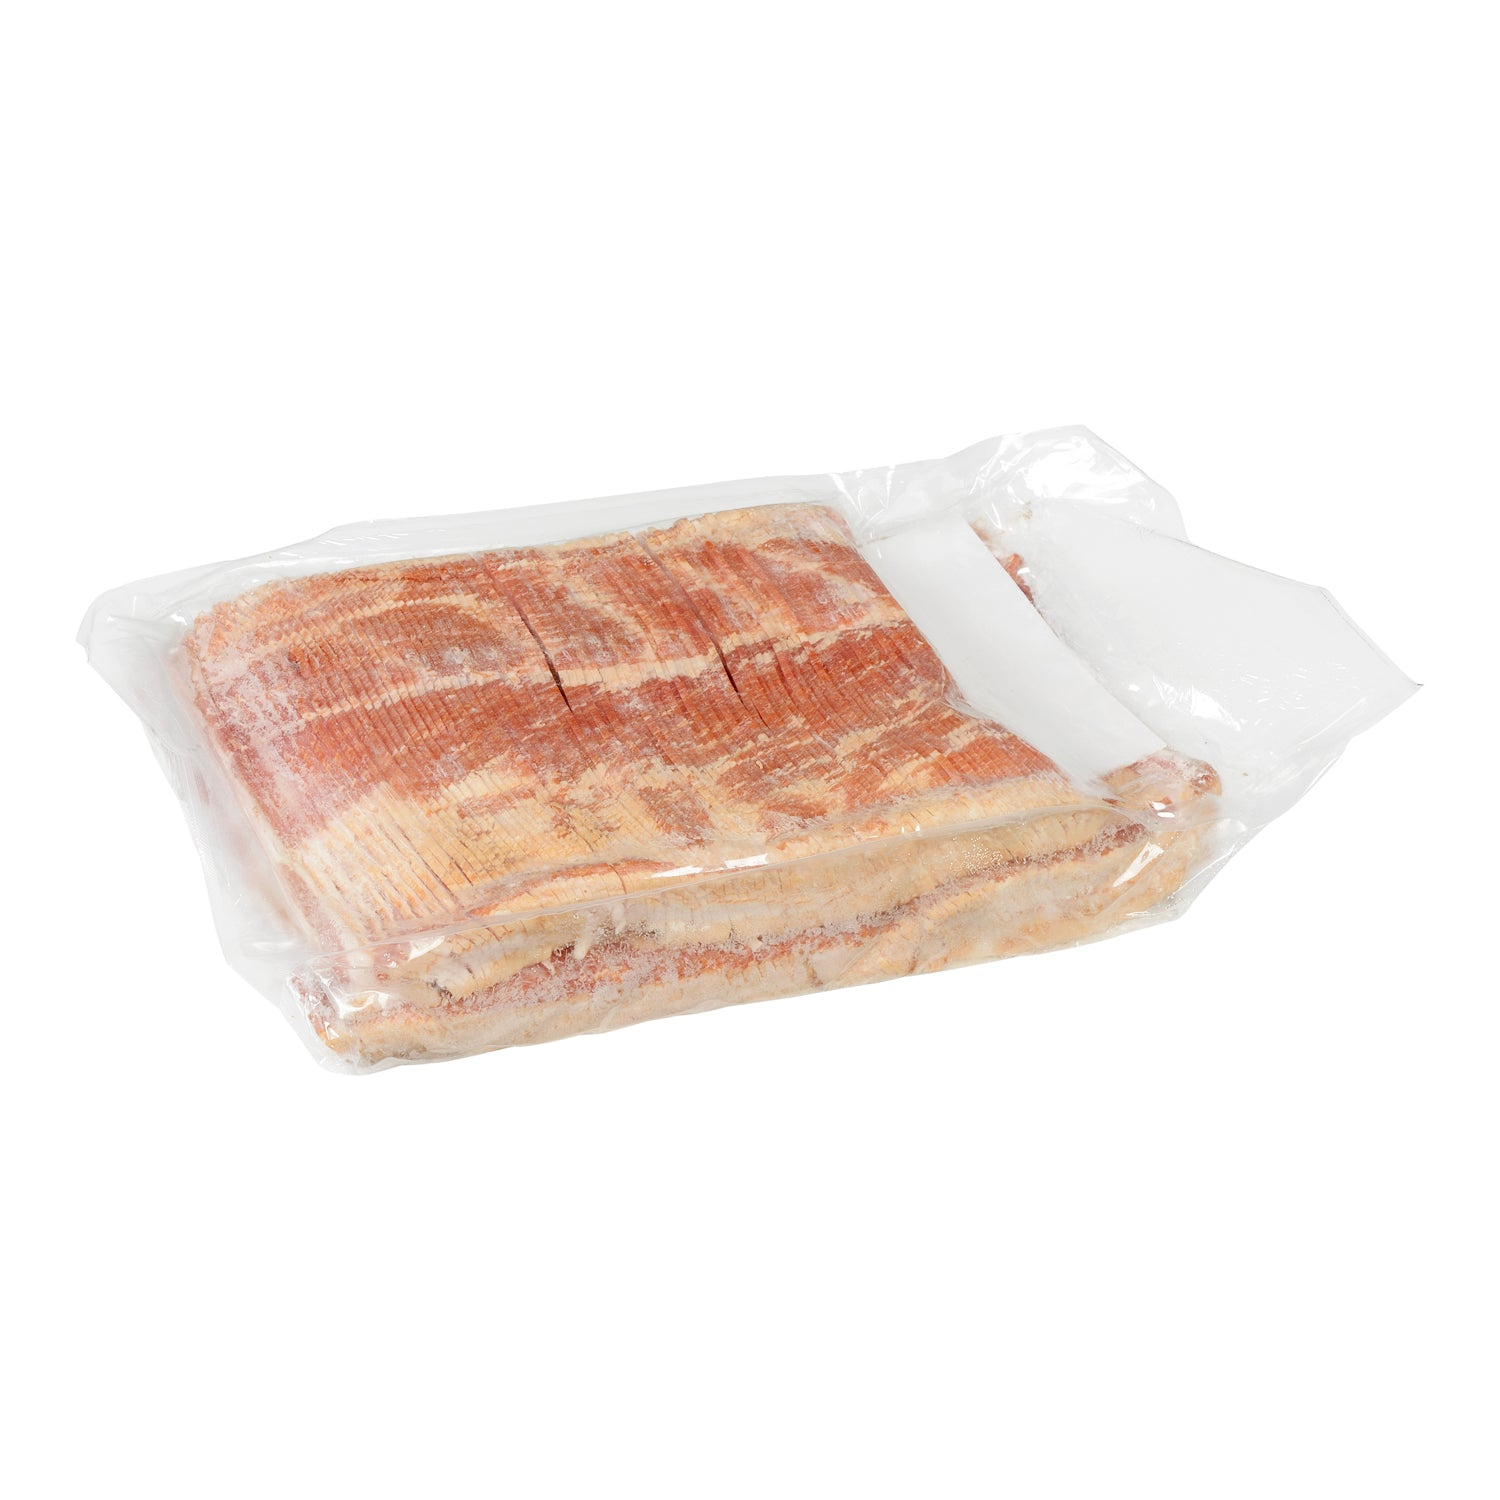 Sysco Classic Fresh Applewood Smoked Centre Cut Medium Sliced Bacon 5 kg - 1 Pack [$13.60/kg]